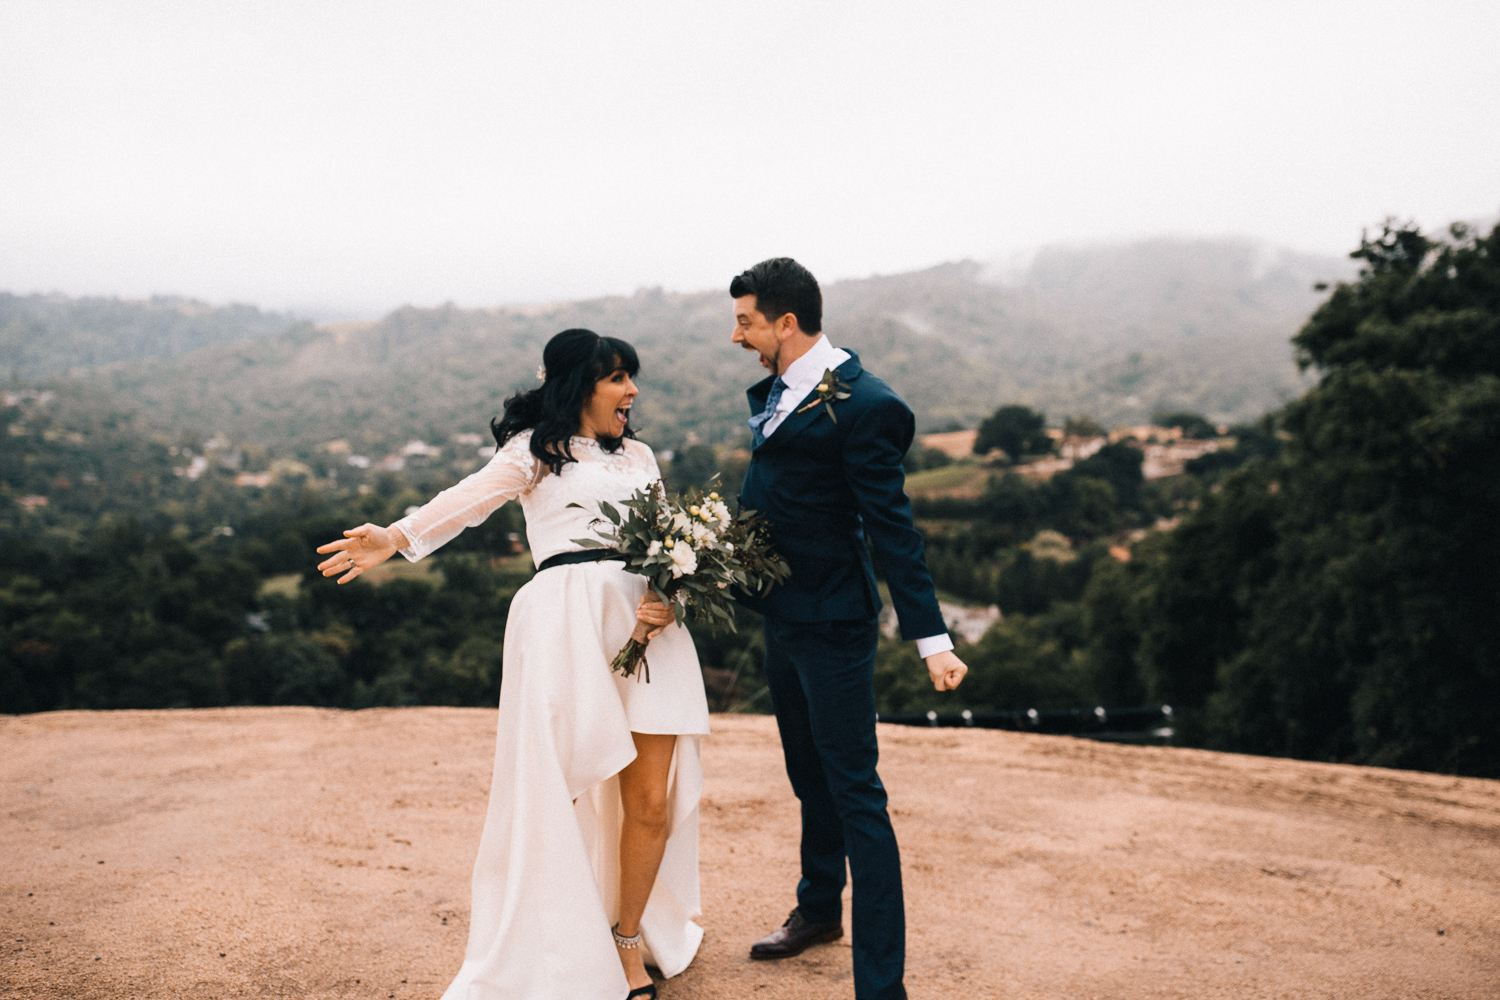 2019_05_ 182019.05.19 Lisa + Eddie South Bay Wedding Blog Photos Edited For Web 0110.jpg